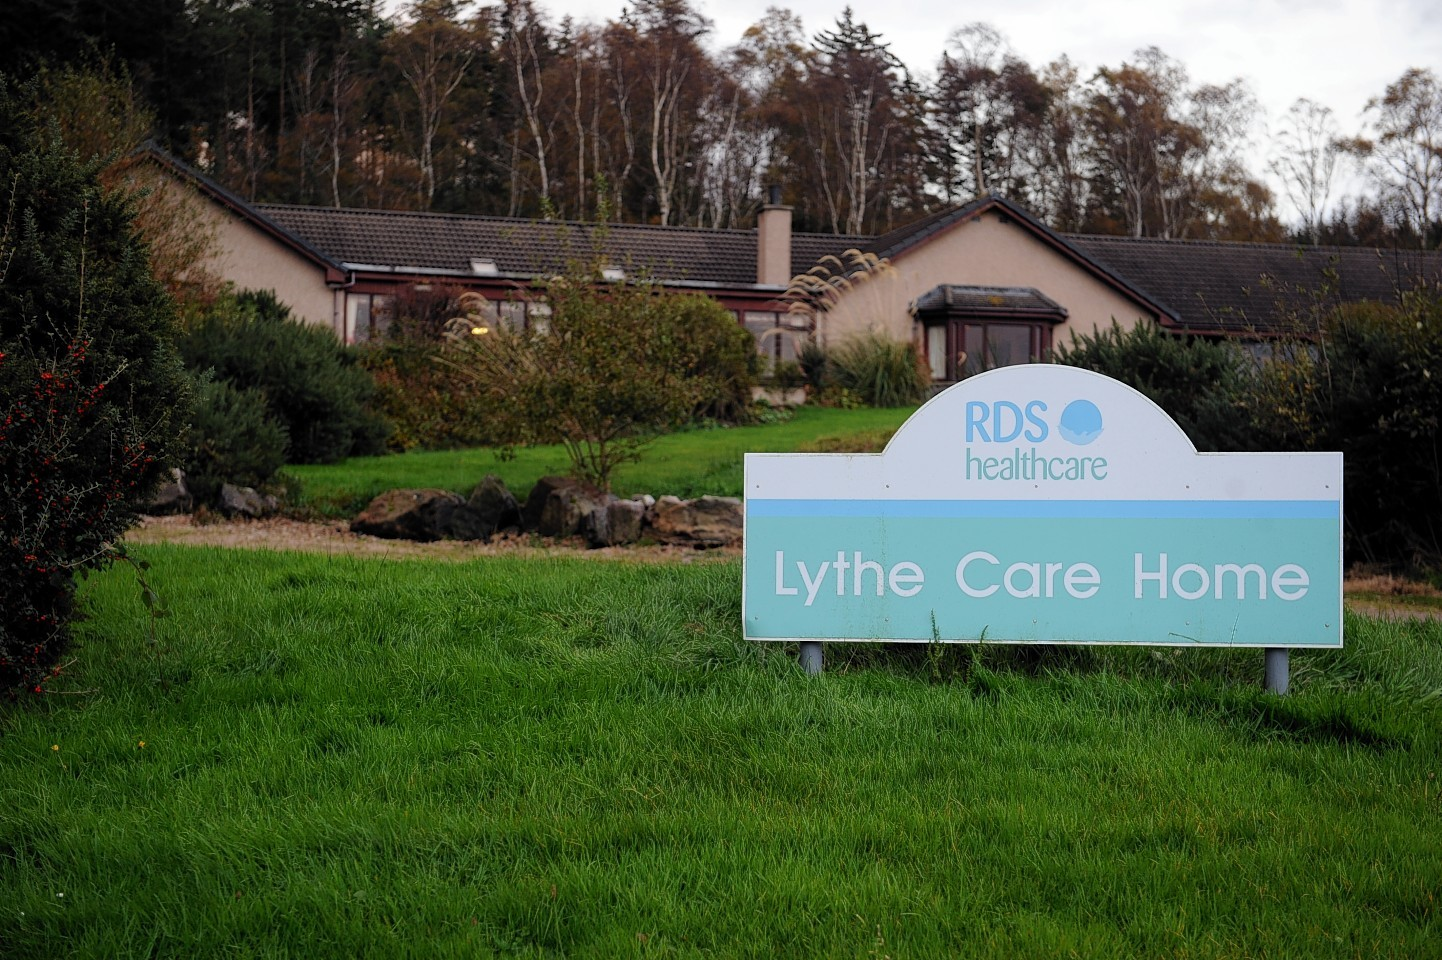 Lythe Care Home